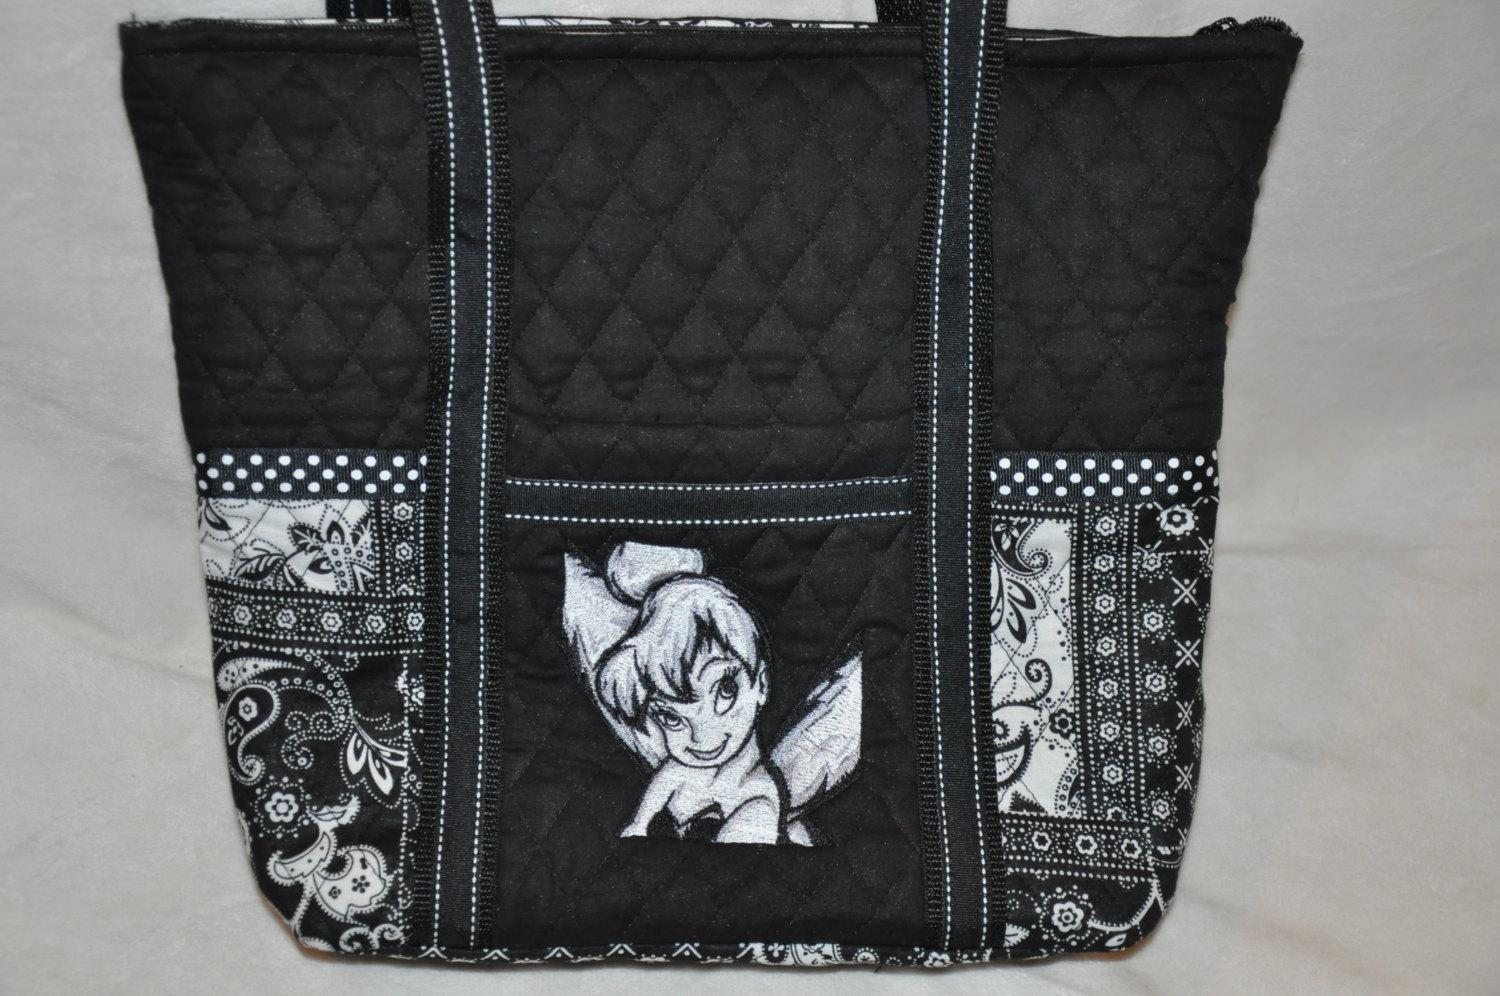 A bag with a head of Tinker Bell aka Tink embroidery design